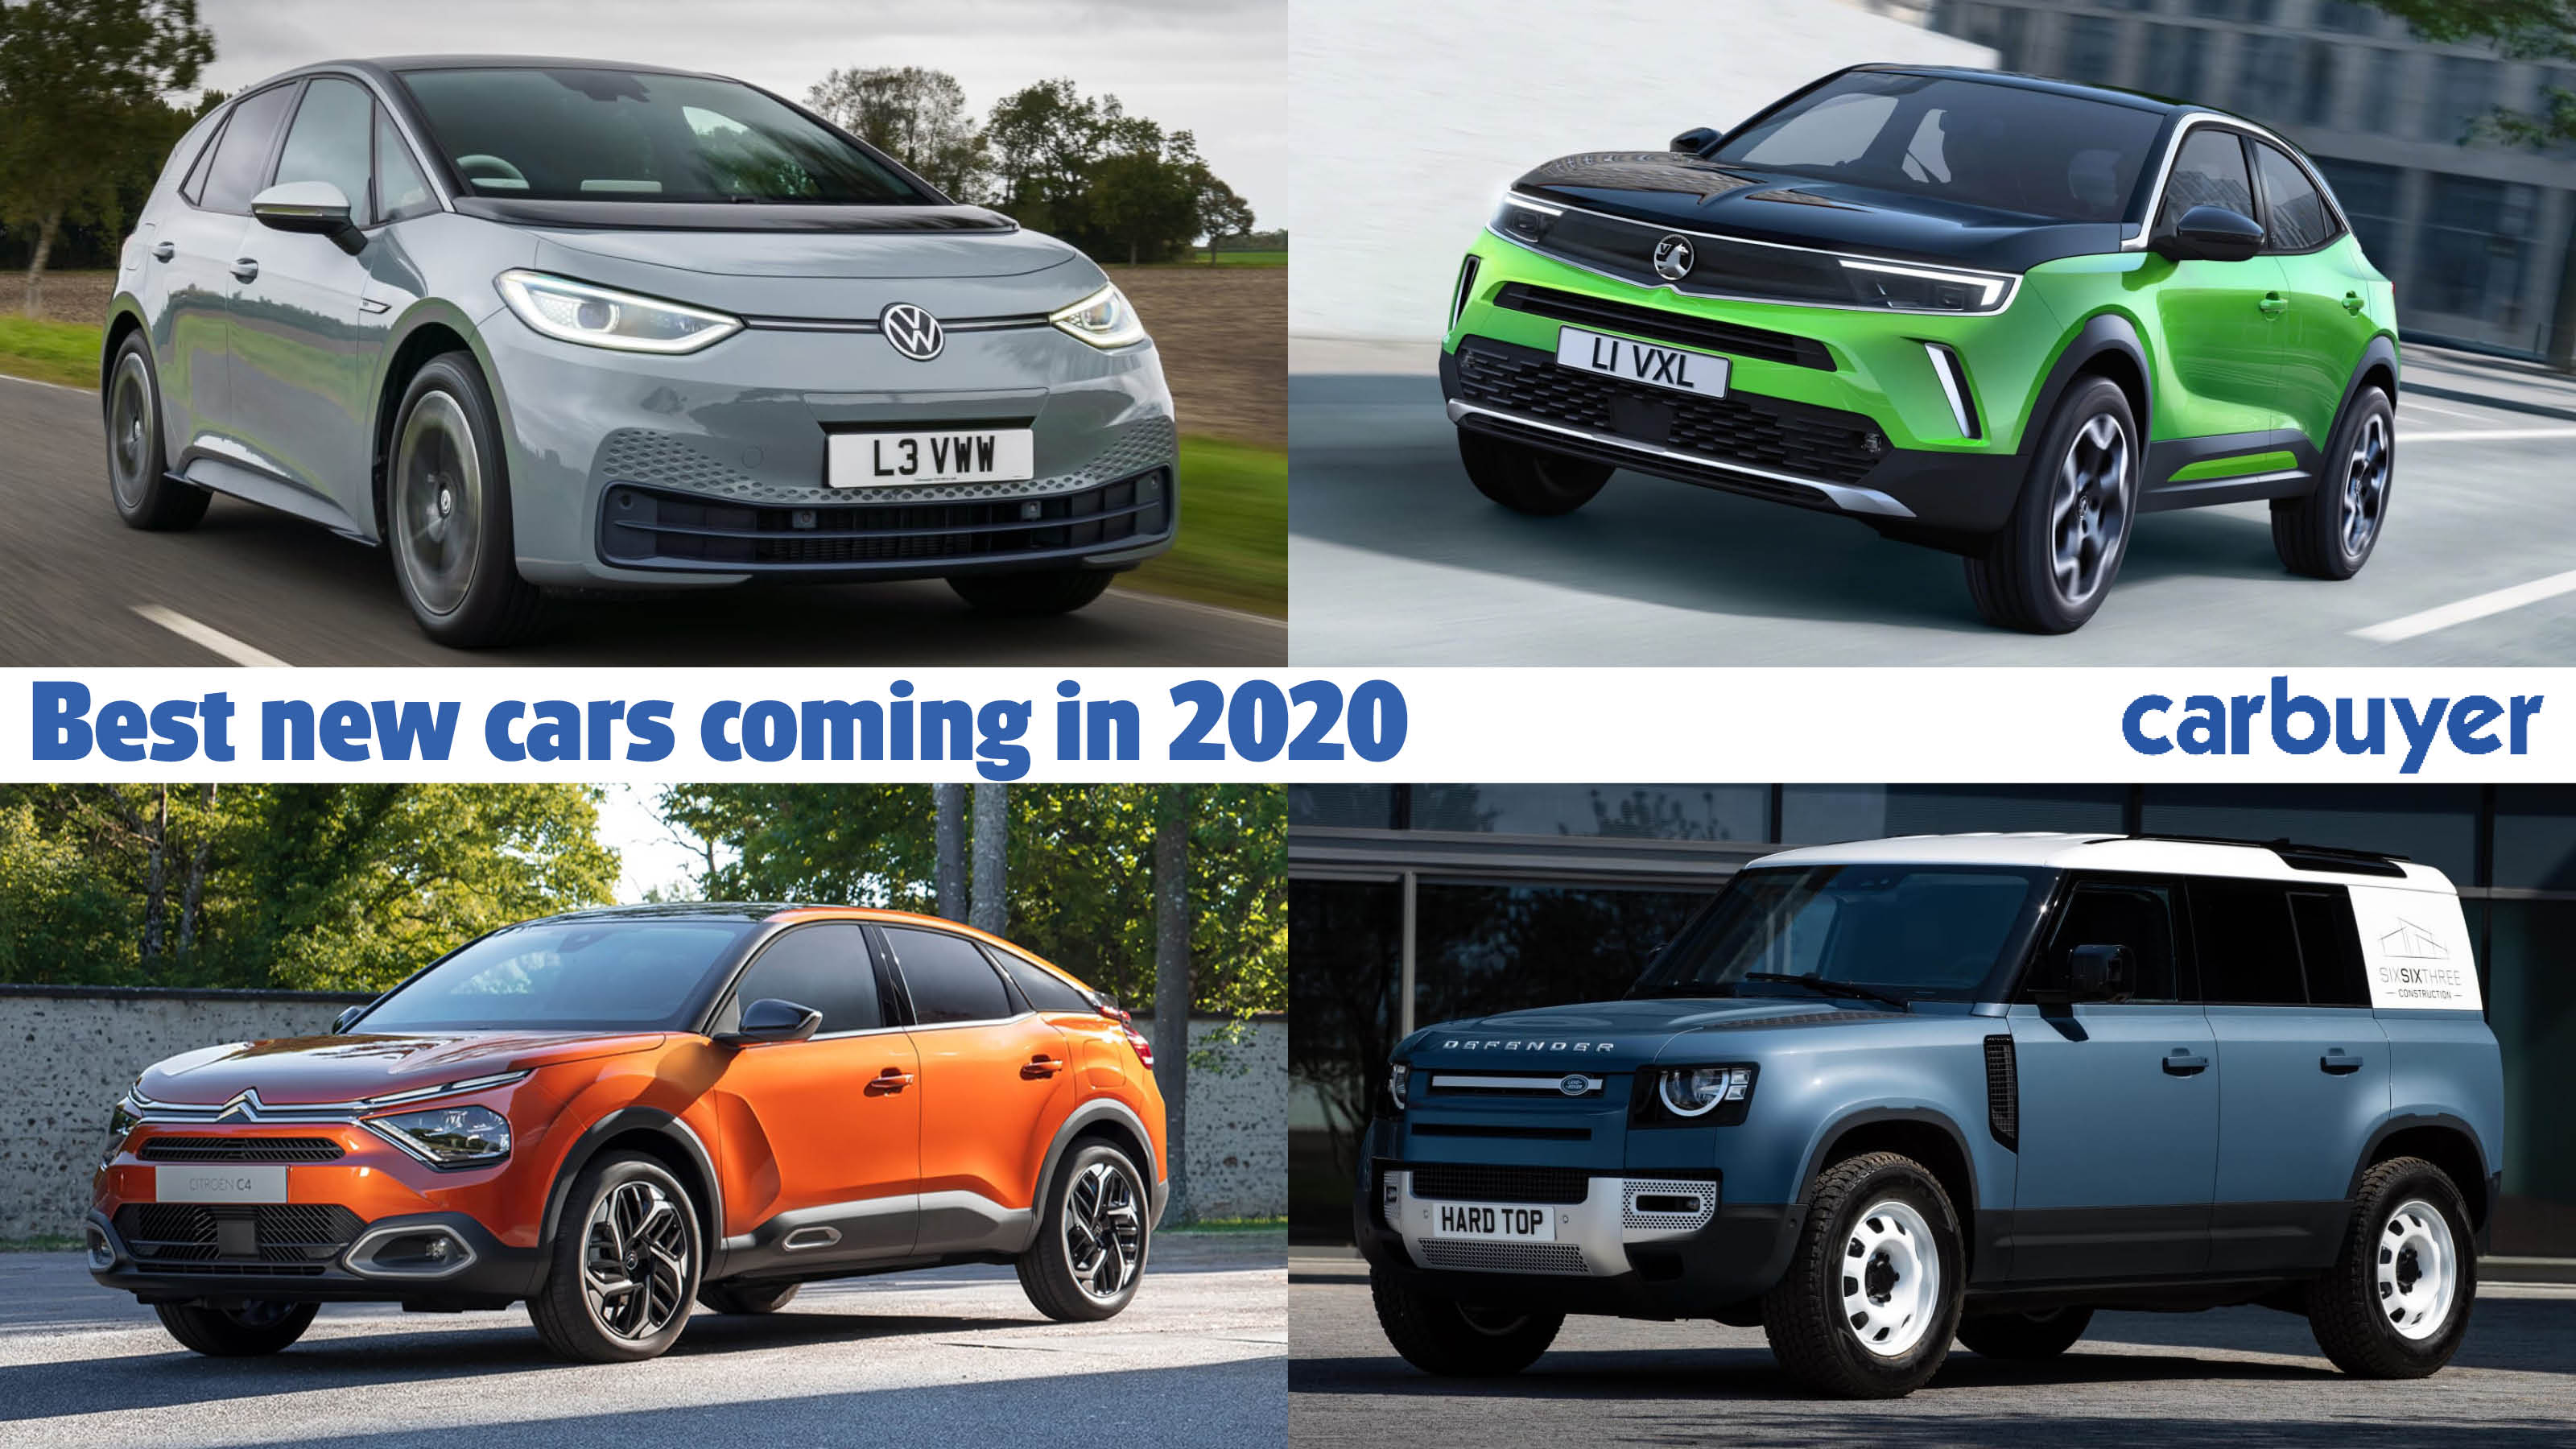 Best New Cars Coming In 2020 Carbuyer